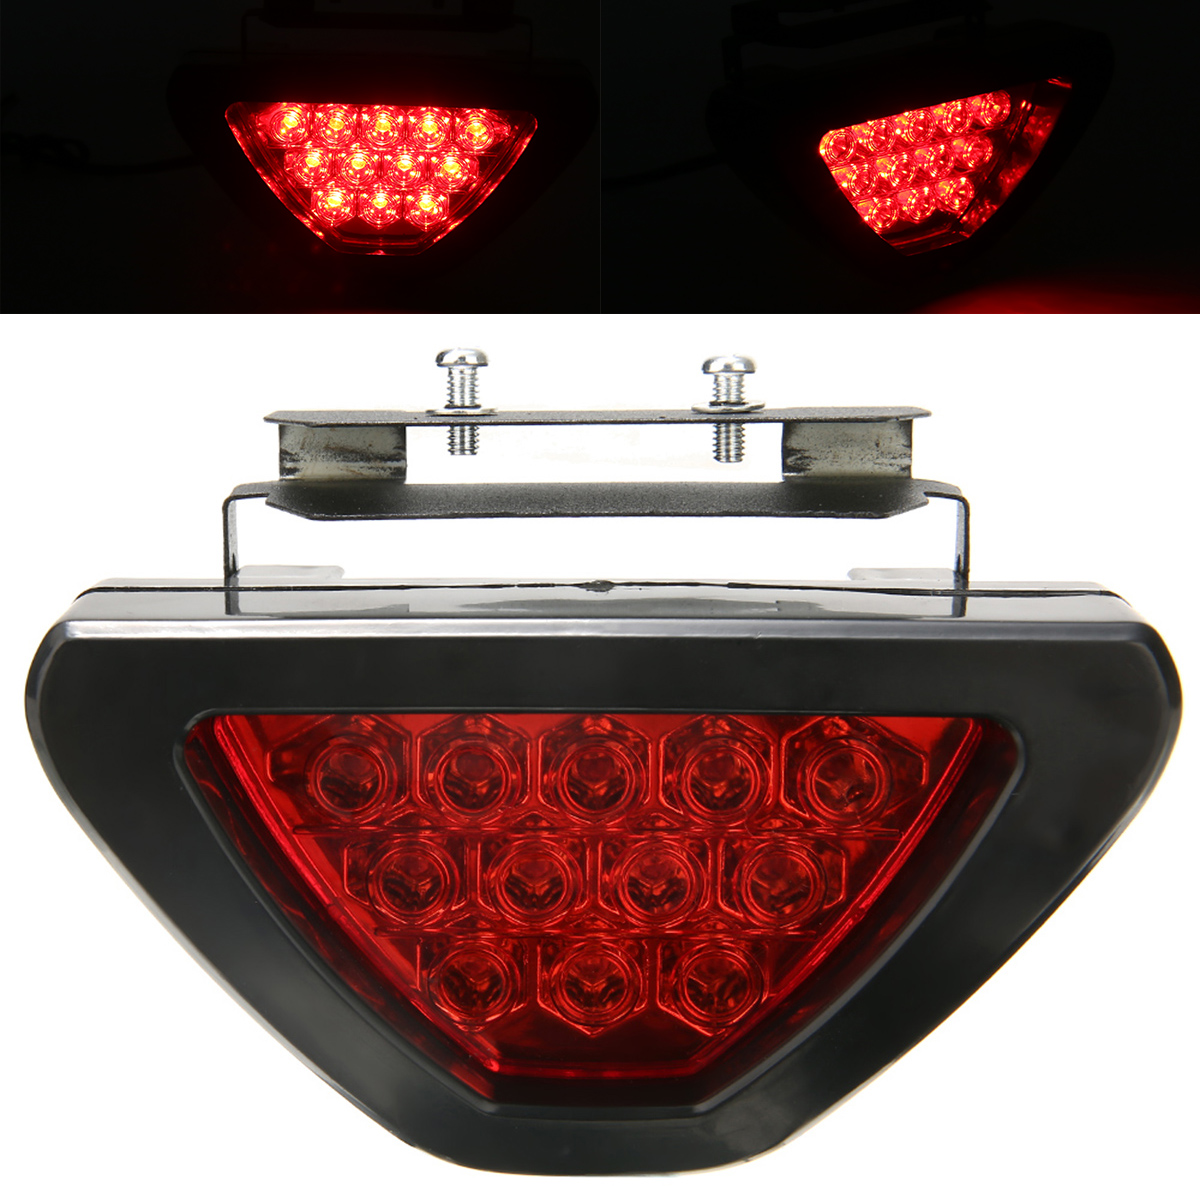 Image 4 - For Car Truck Brake Lights Universal F1 Style 12 LED Red Rear Tail Third Brake Stop Light Safety Signal Lamp-in Signal Lamp from Automobiles & Motorcycles